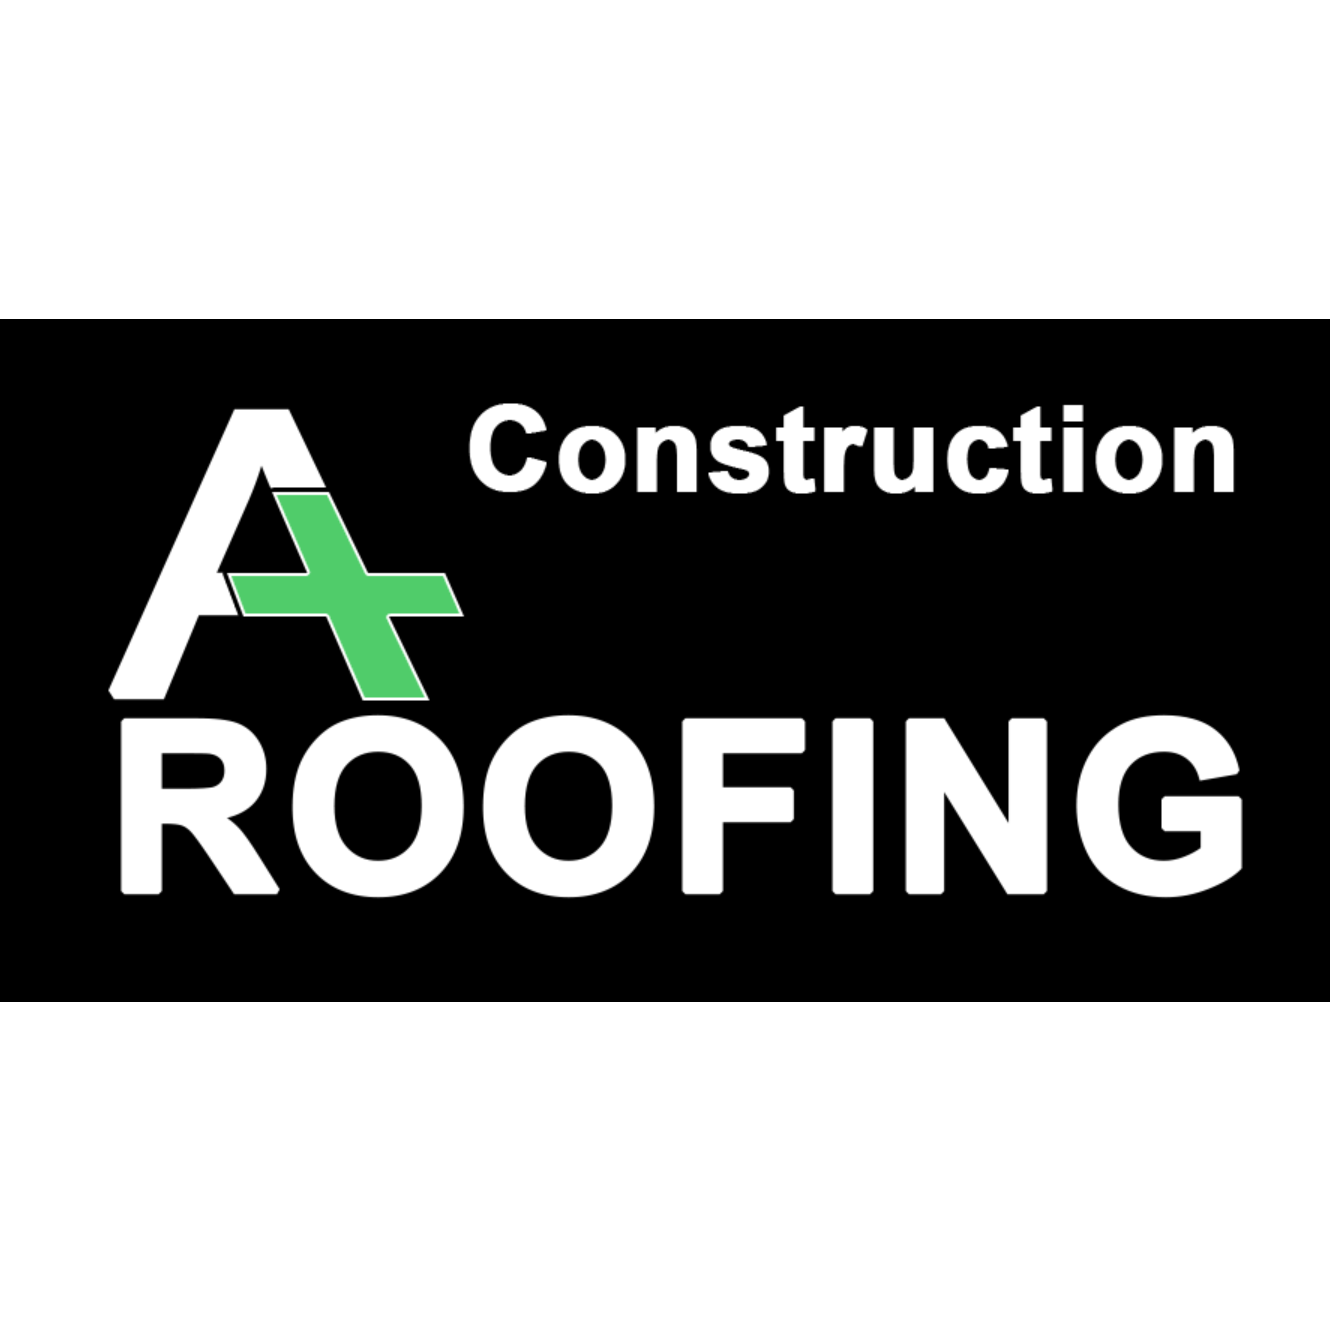 A+ Construction & Roofing - Granbury, TX - Roofing Contractors